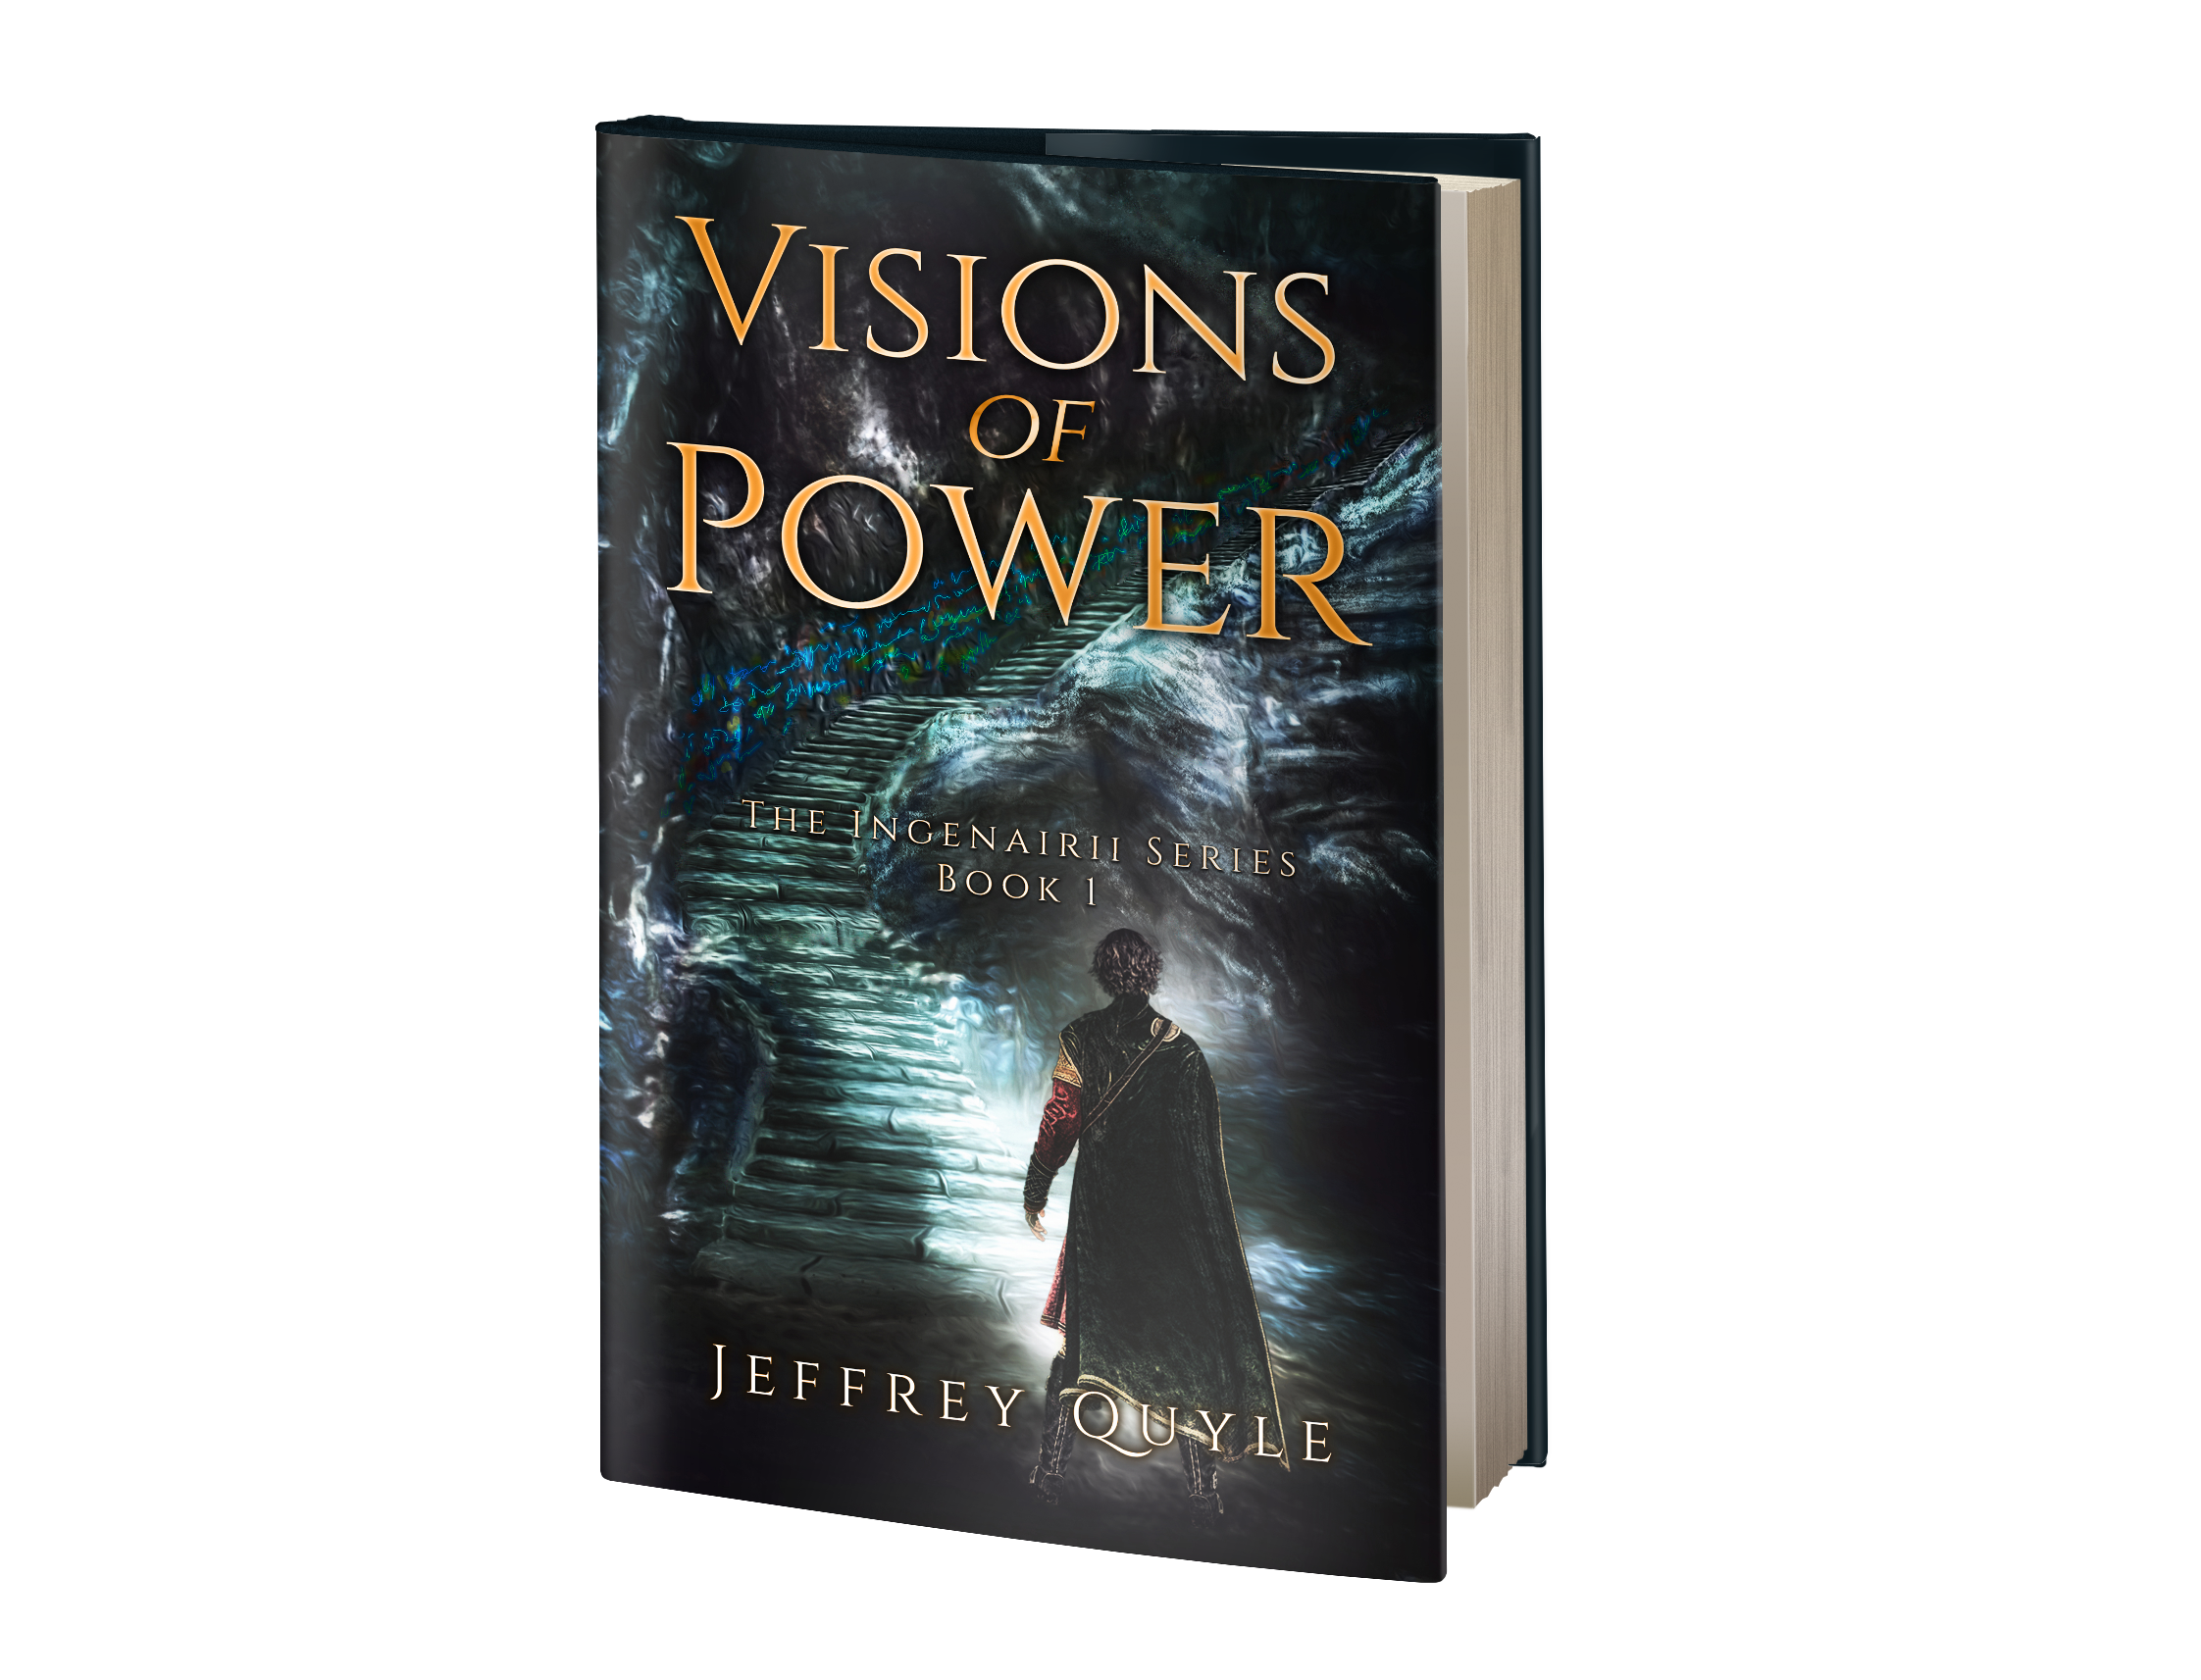 Visions of Power book cover